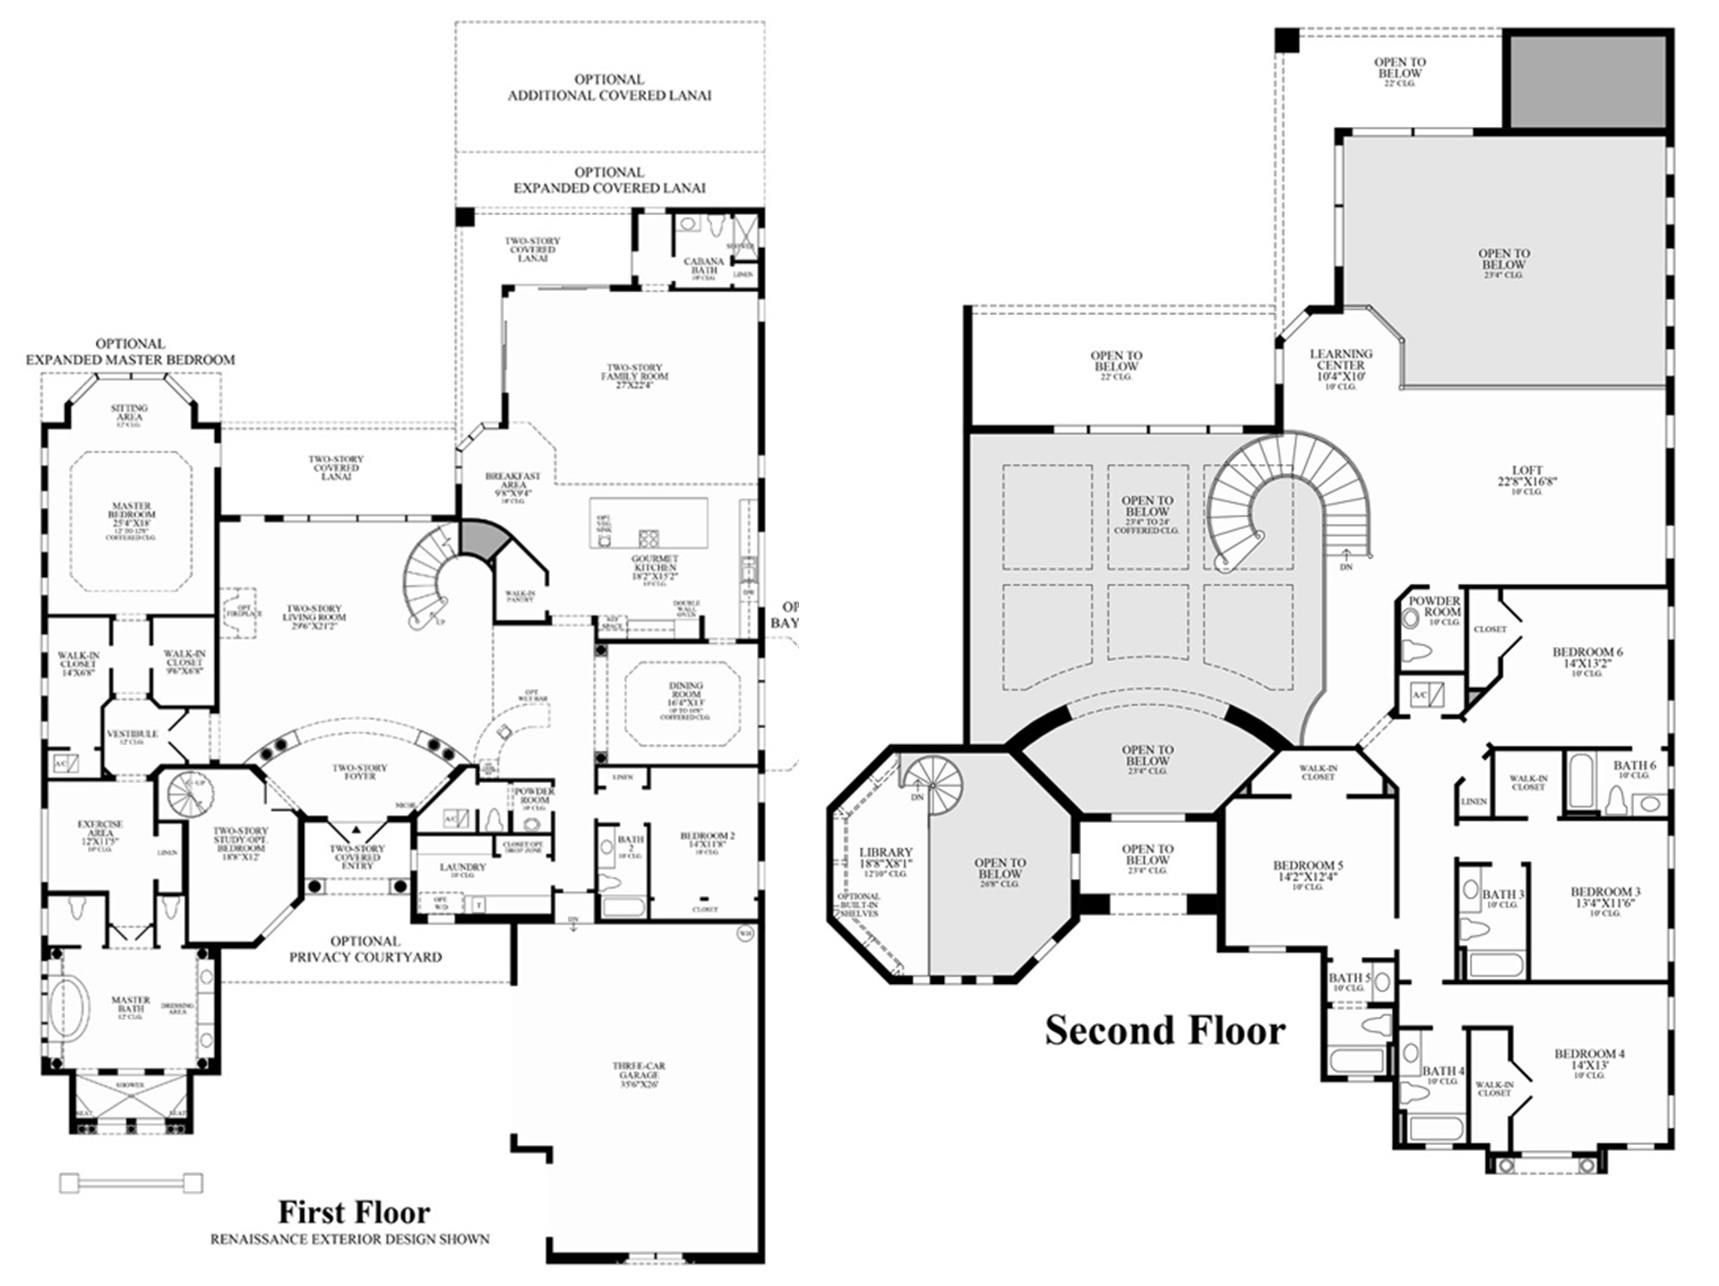 Bathroom floor plans walk in shower bathroom floor plans walk in shower 100 windermere luxury Universal design bathroom floor plans